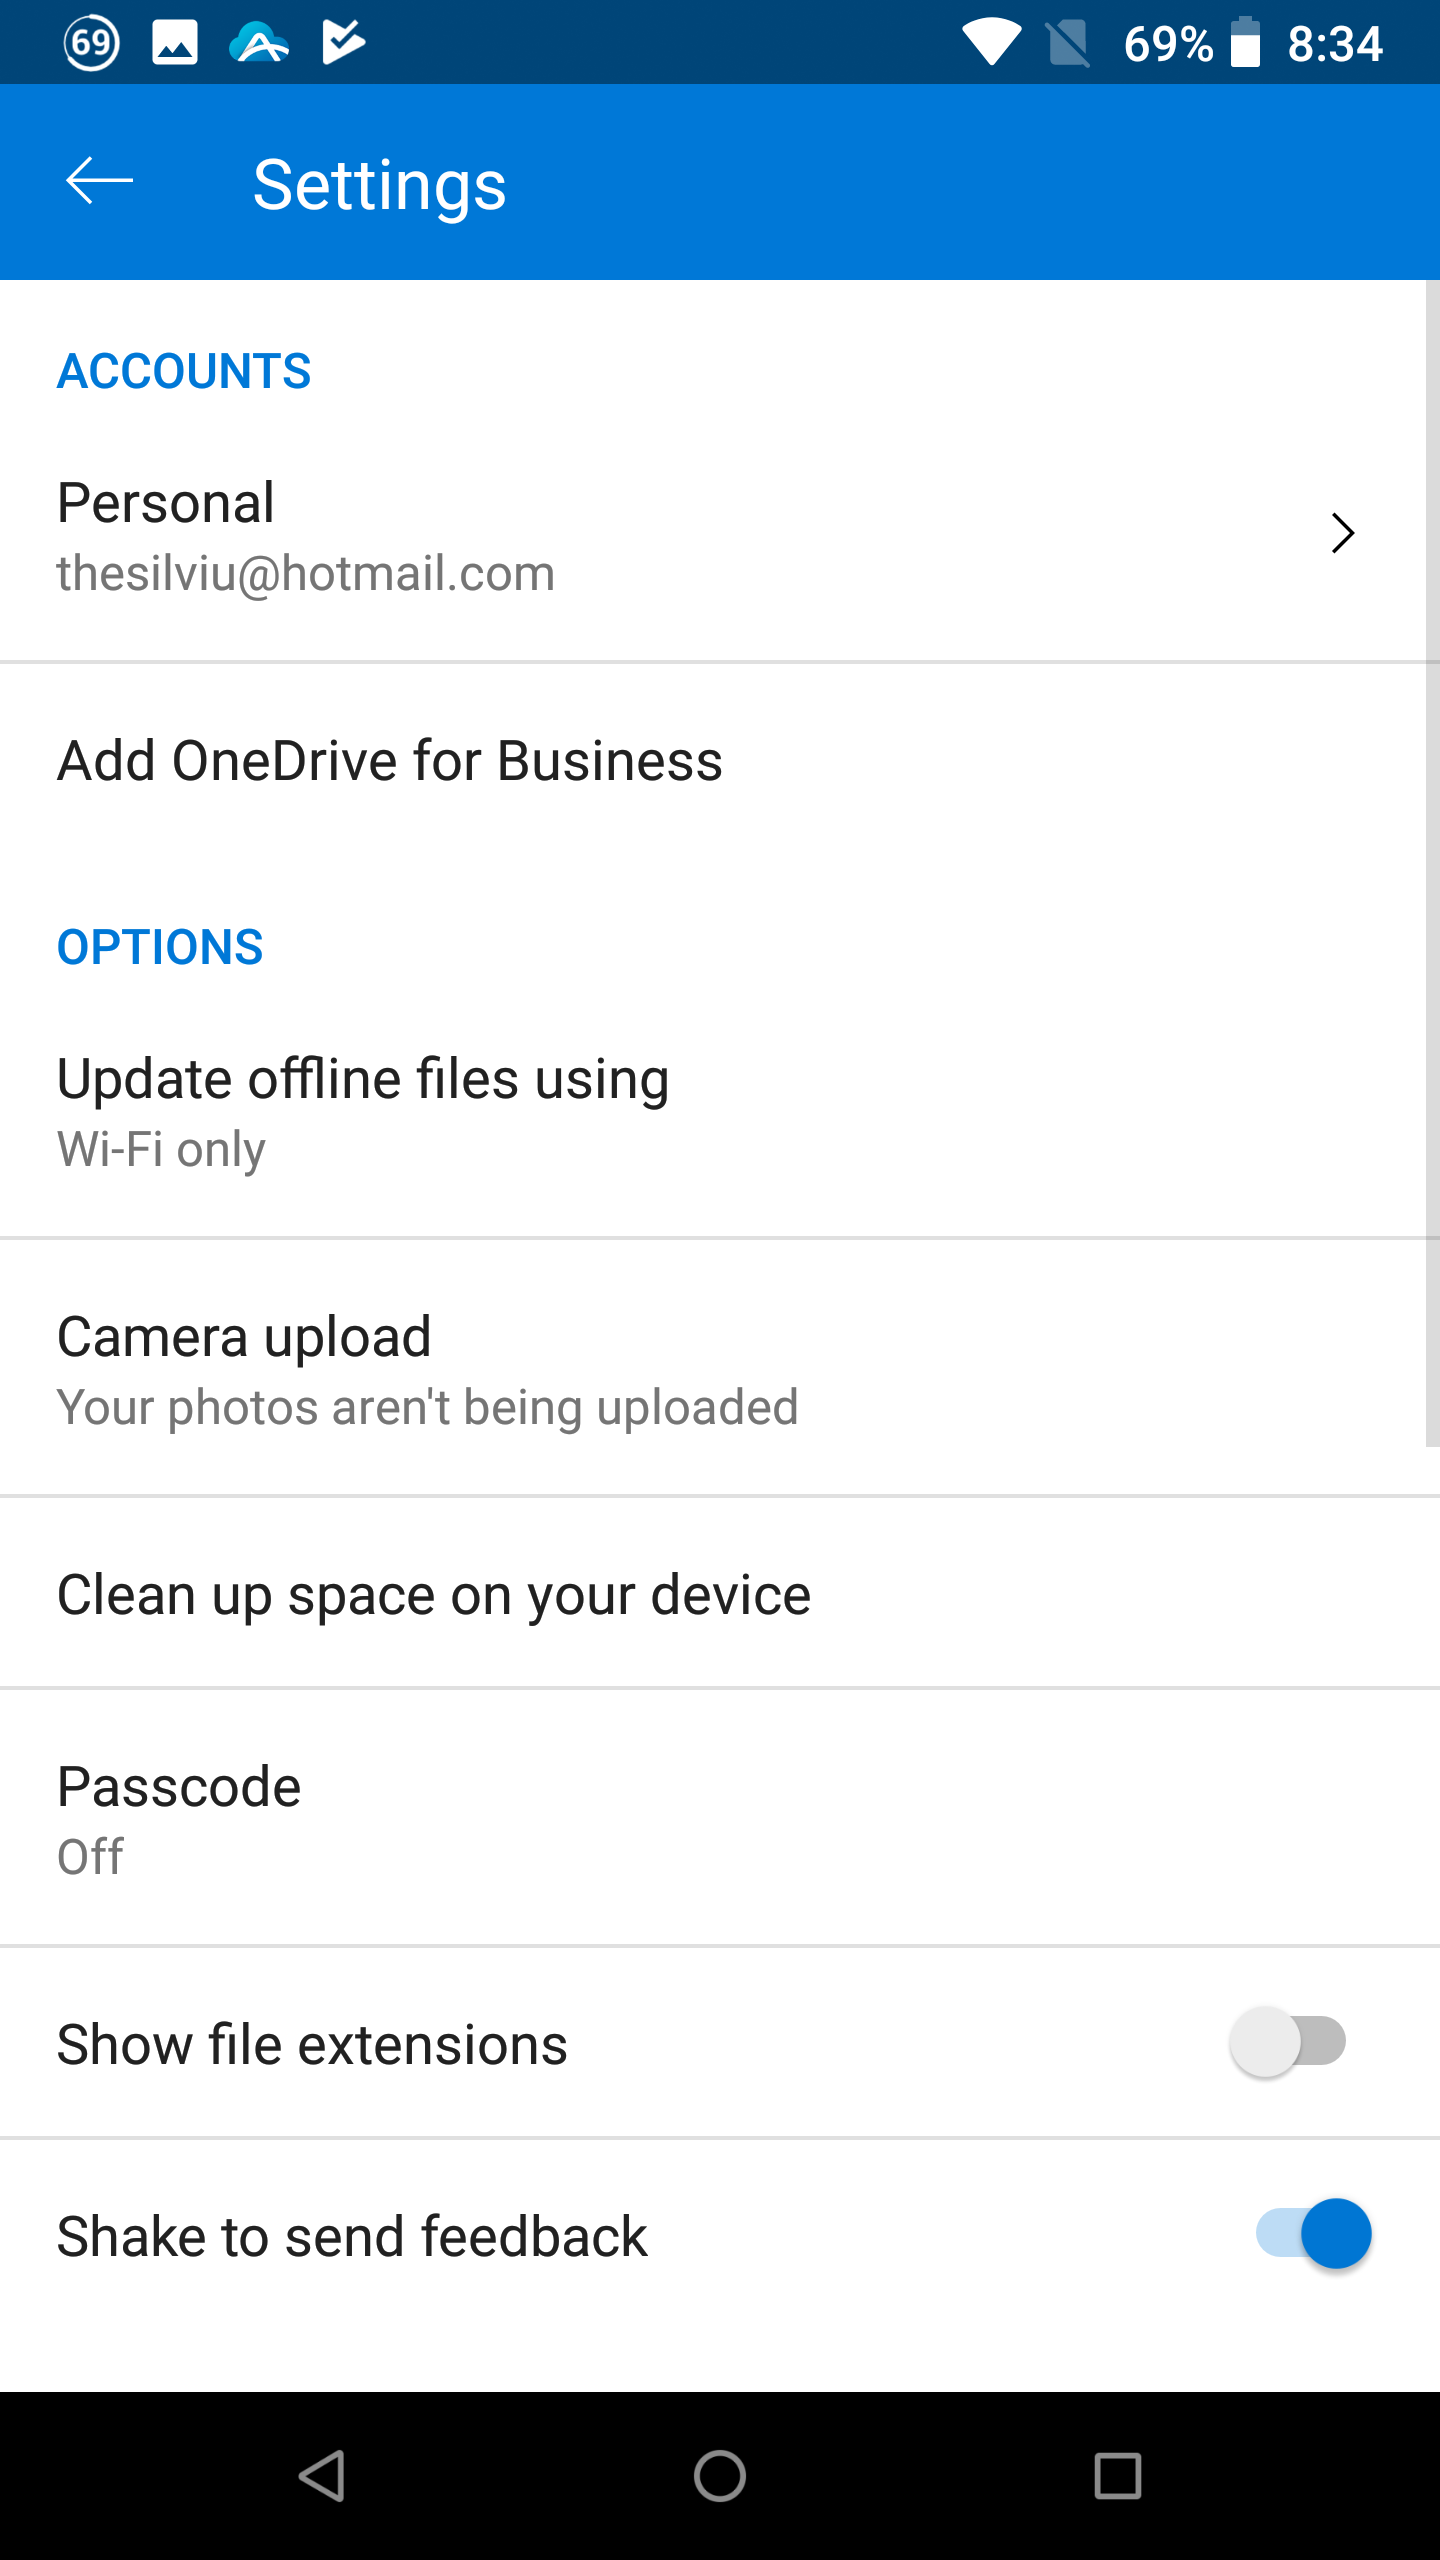 Microsoft Rolls Out New Look for OneDrive on Android